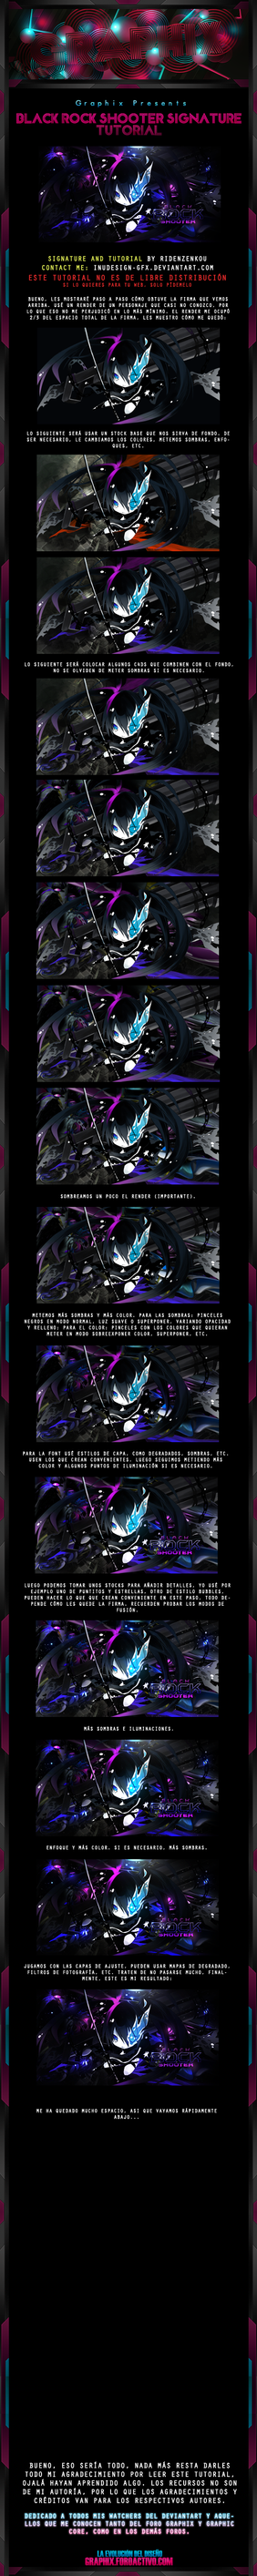 Black Rock Shooter Signature Tutorial by Inudesign-GFX